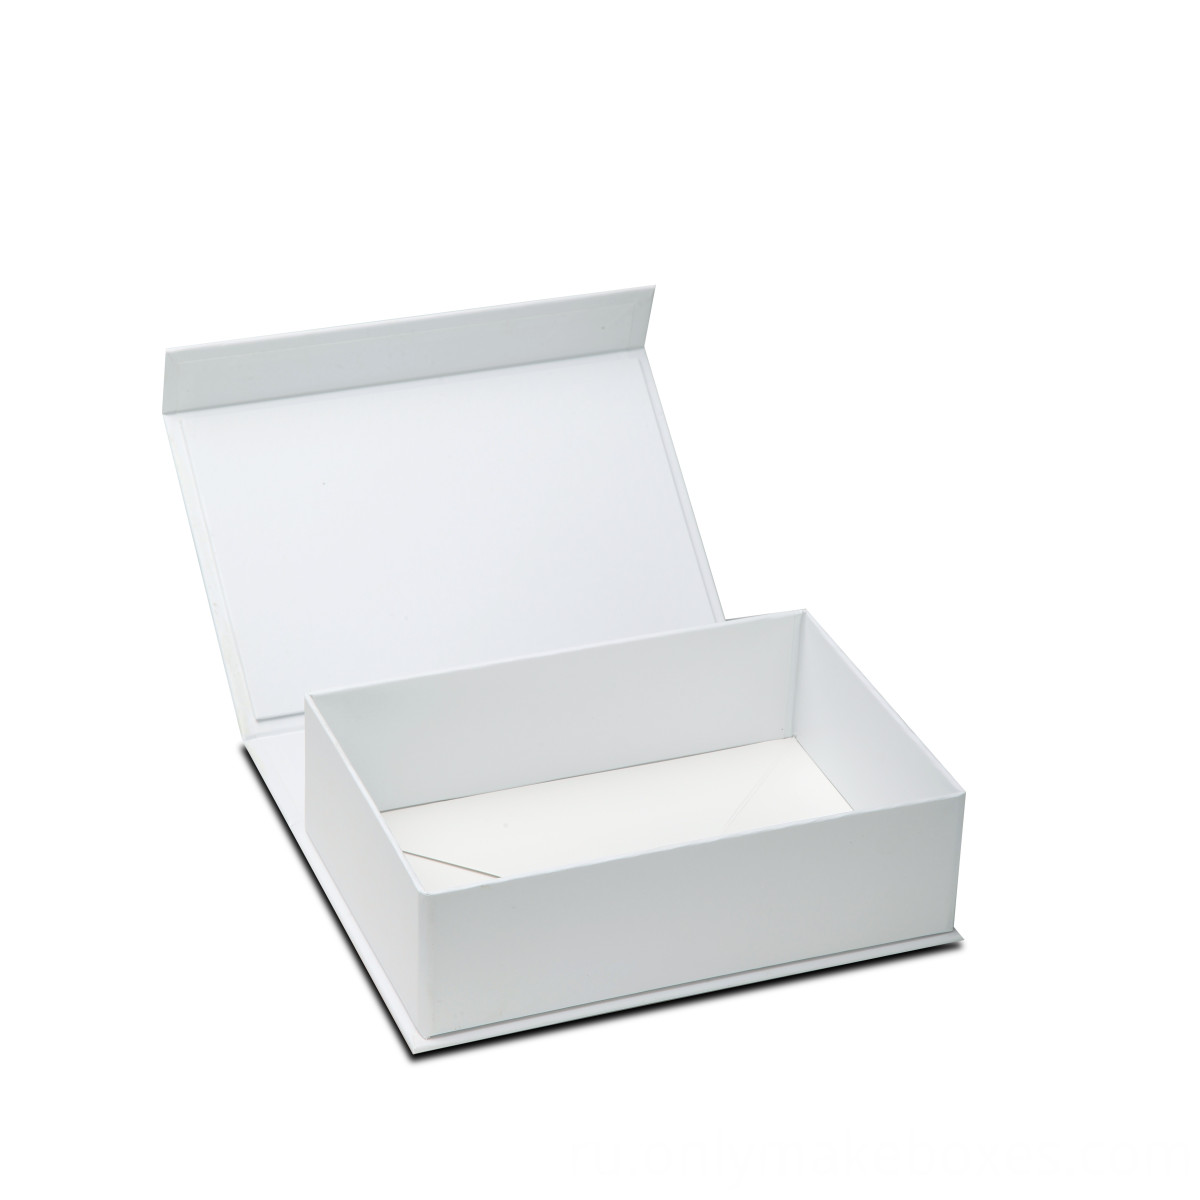 White Collapsible Box with side way folding and magnet closure